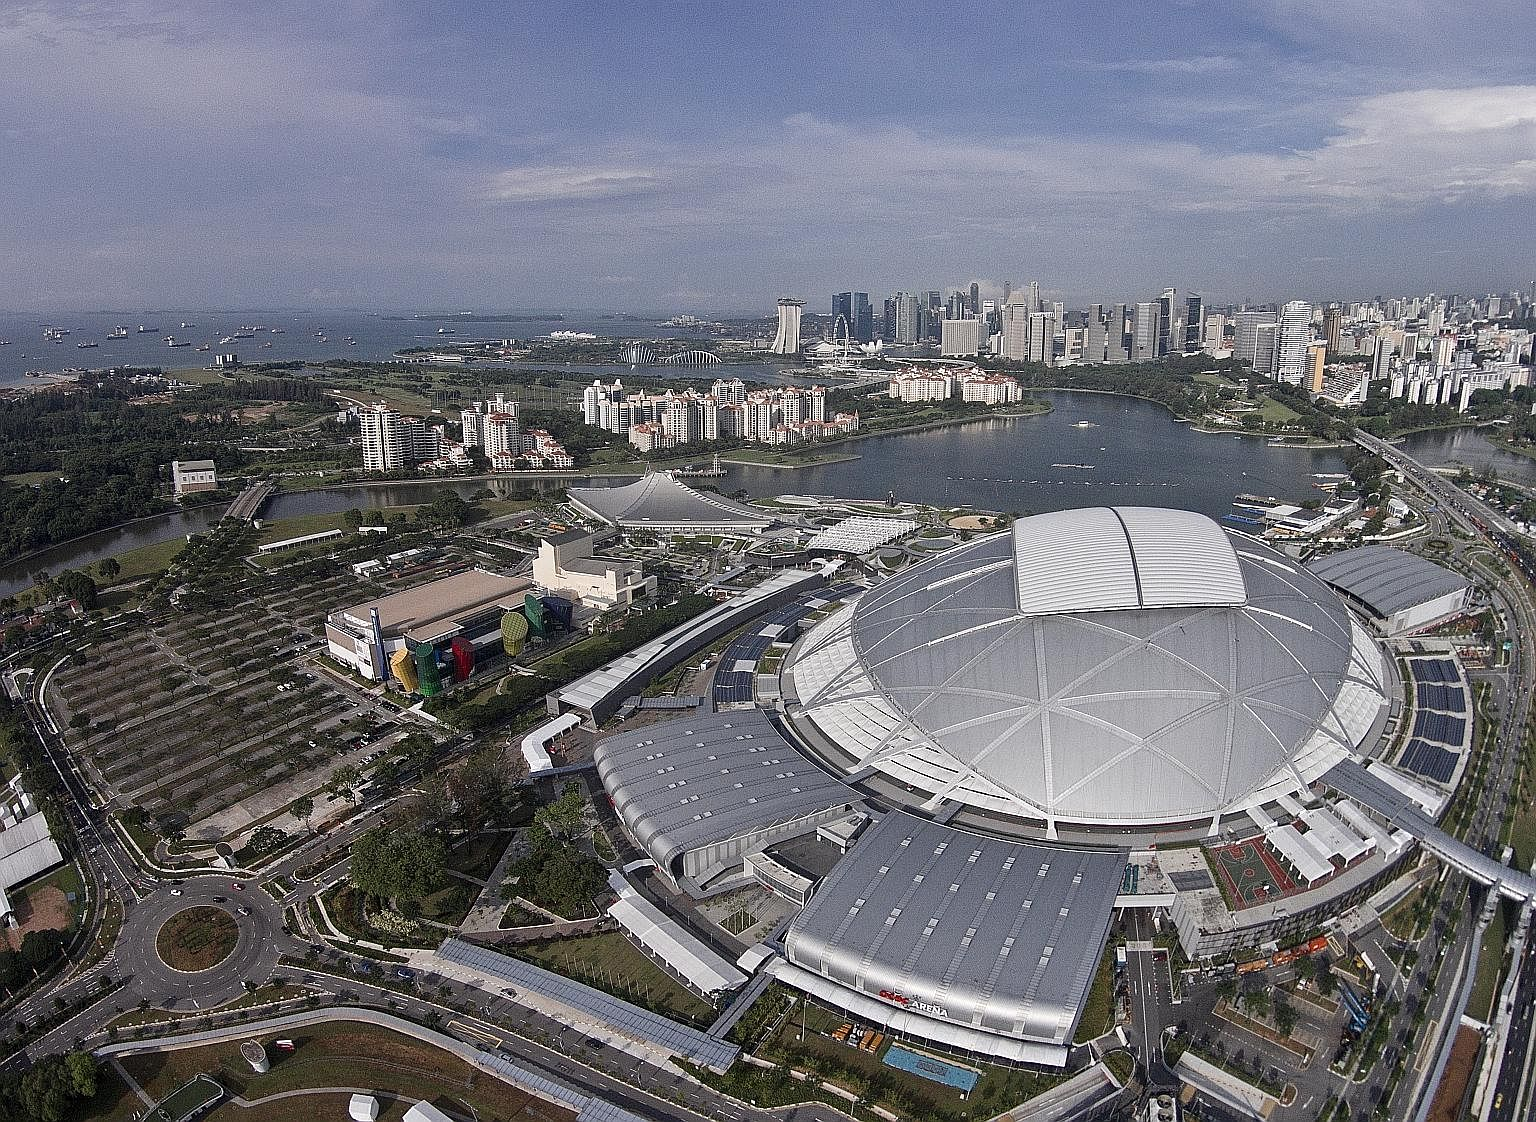 Singapore's National Stadium has a seating capacity of 55,000. Fifa requires host cities to have stadiums with at least a capacity of 40,000 to hold World Cup matches (60,000 for semi-finals and 80,000 for the opening match and final). With different